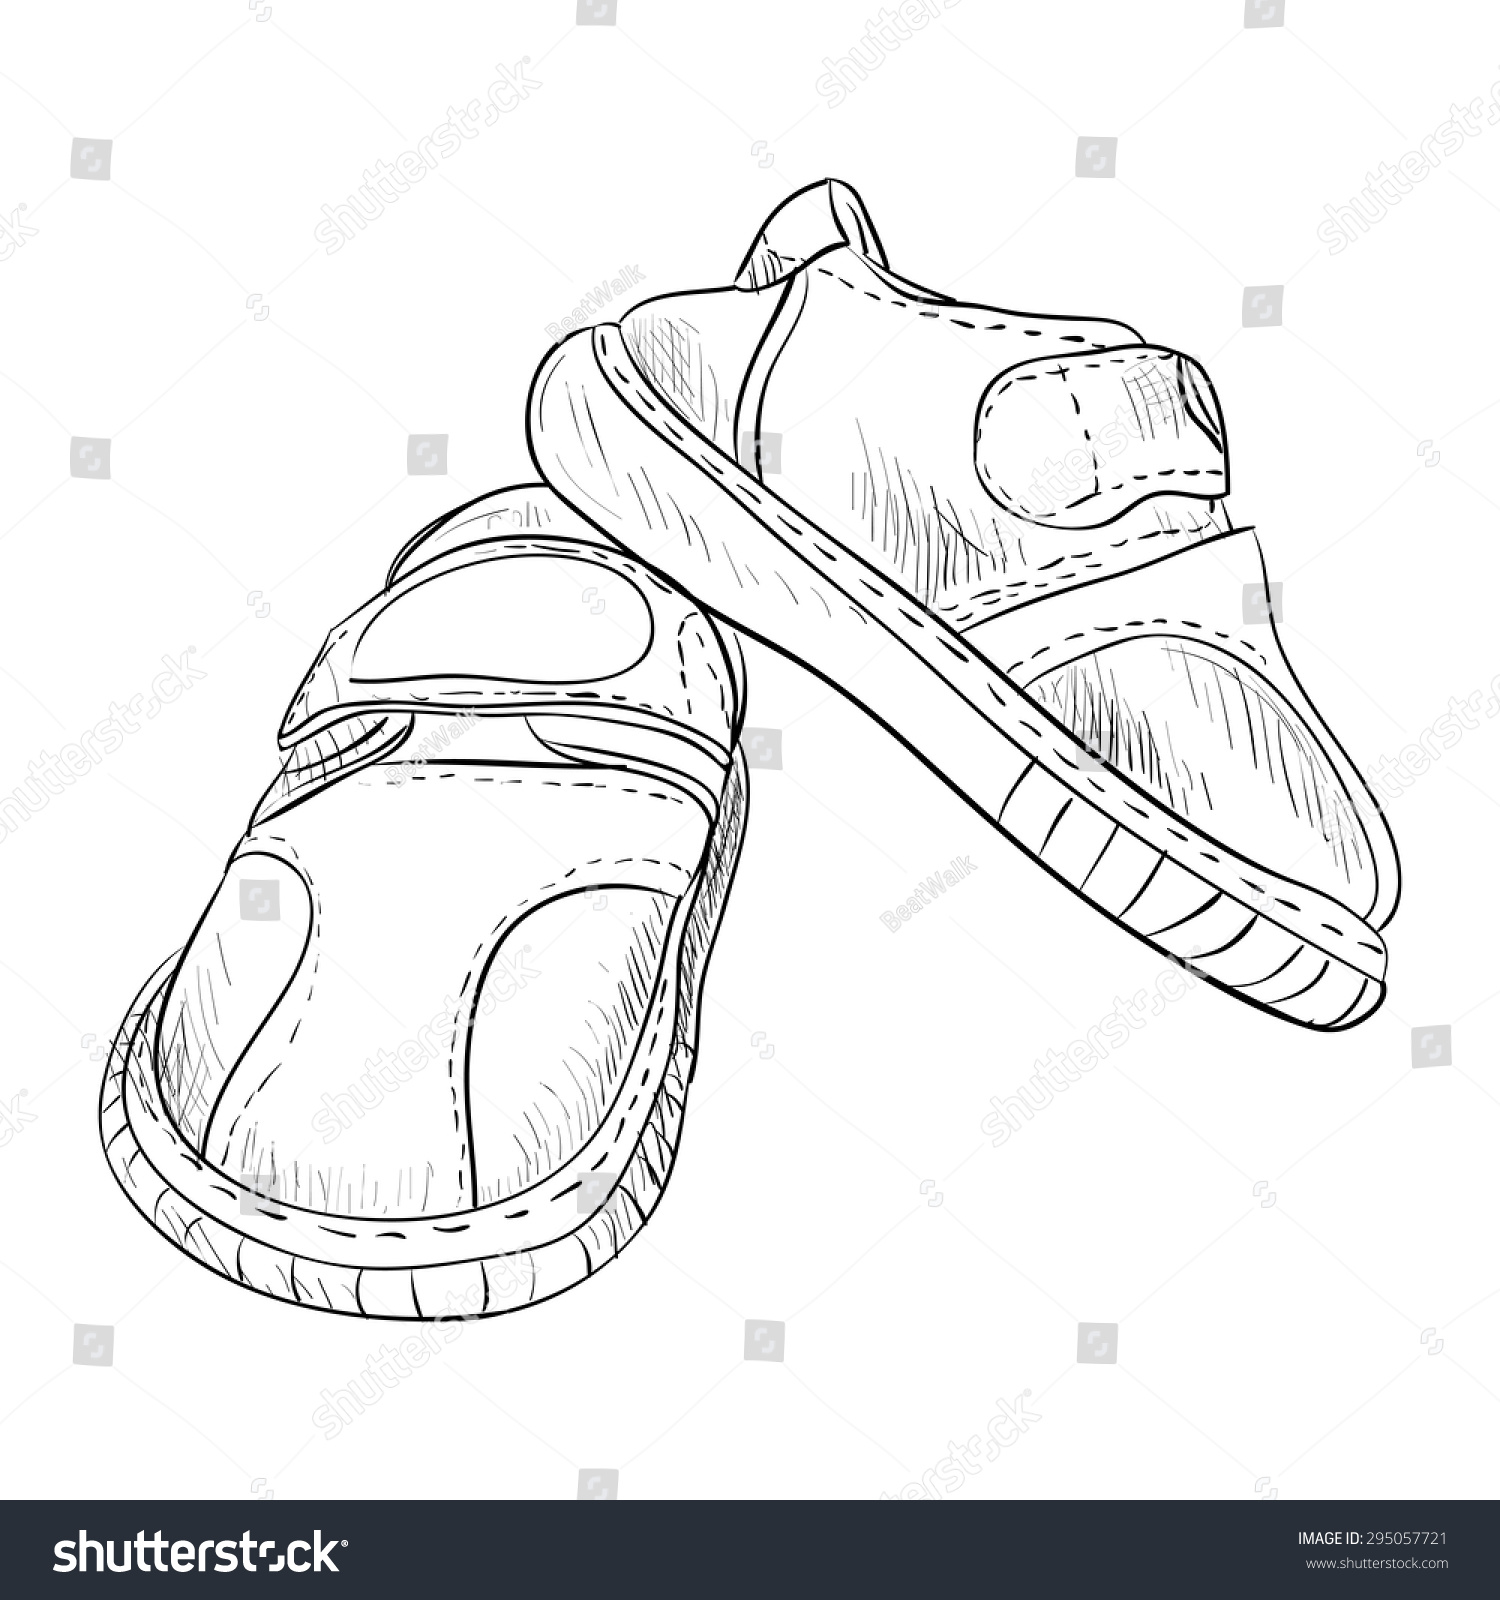 Uncategorized Draw Boots vector sketch kid boots hand draw stock 295057721 of illustration